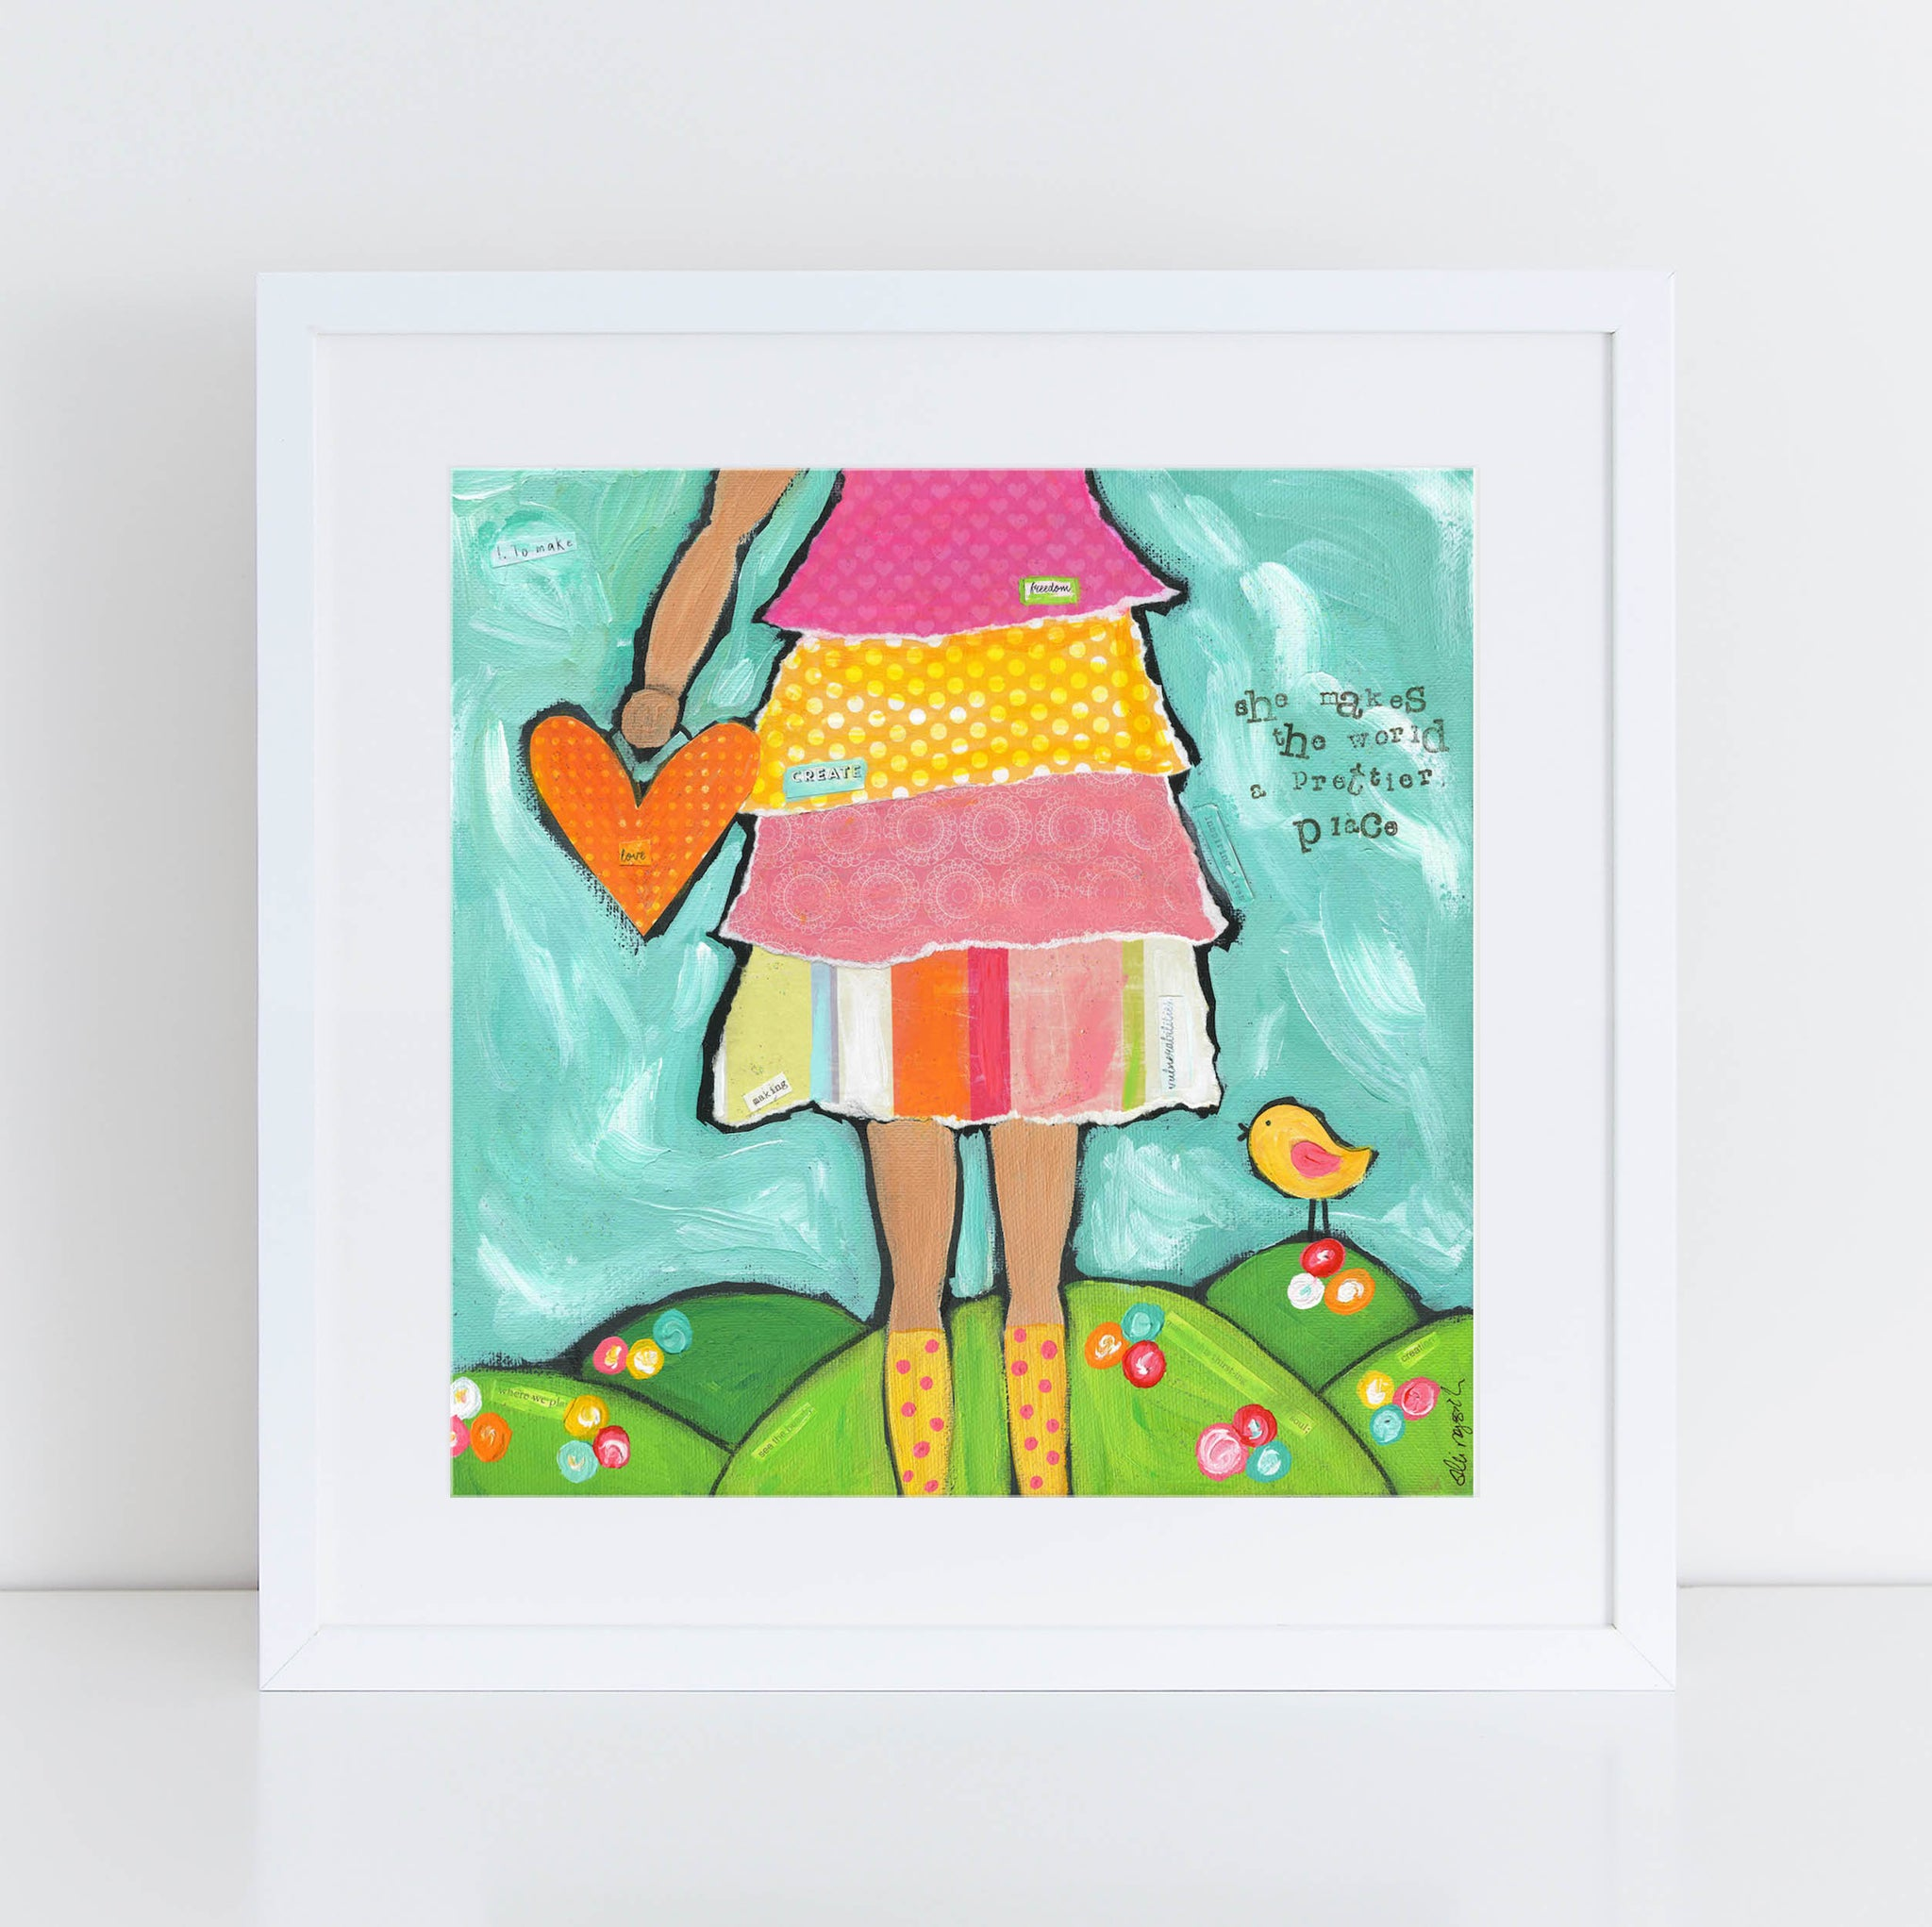 Brave Girls Art Print, Maker, Artist, Creative Girl, Self Esteem, confidence, girls room decor, colorful whimsical Christian Wall decor